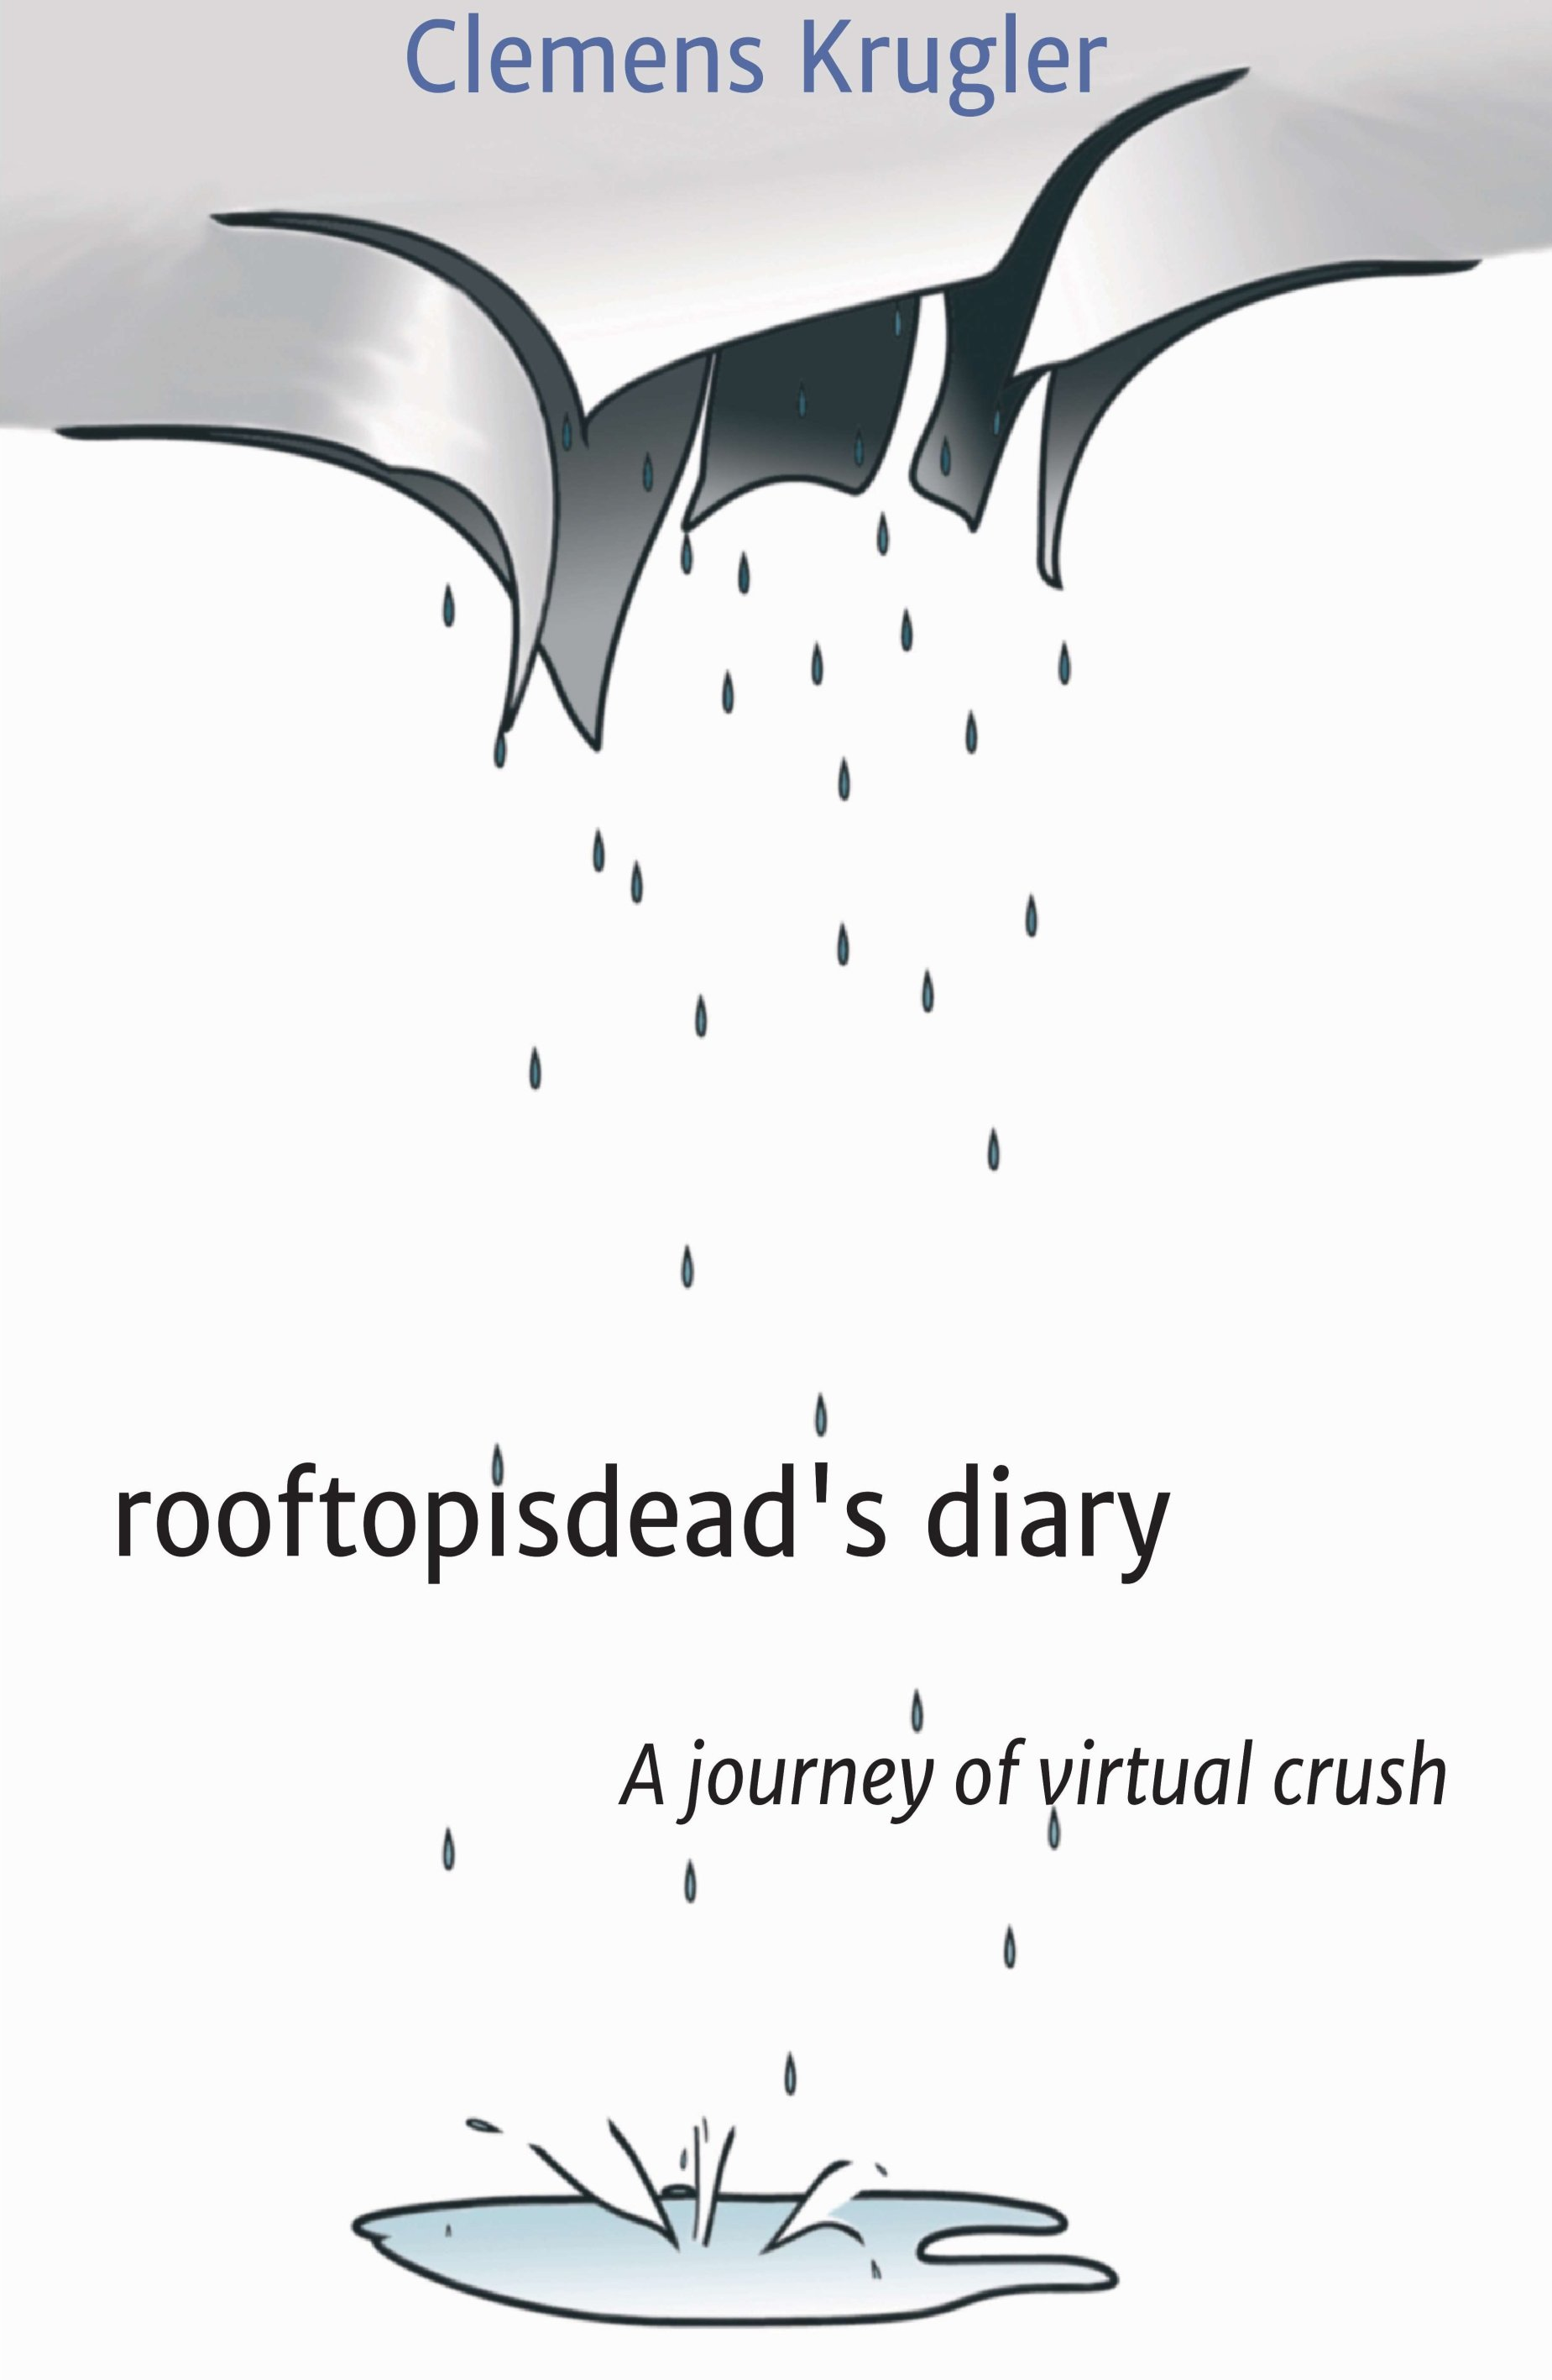 rooftopisdead's diary - A diary about a virtual crush